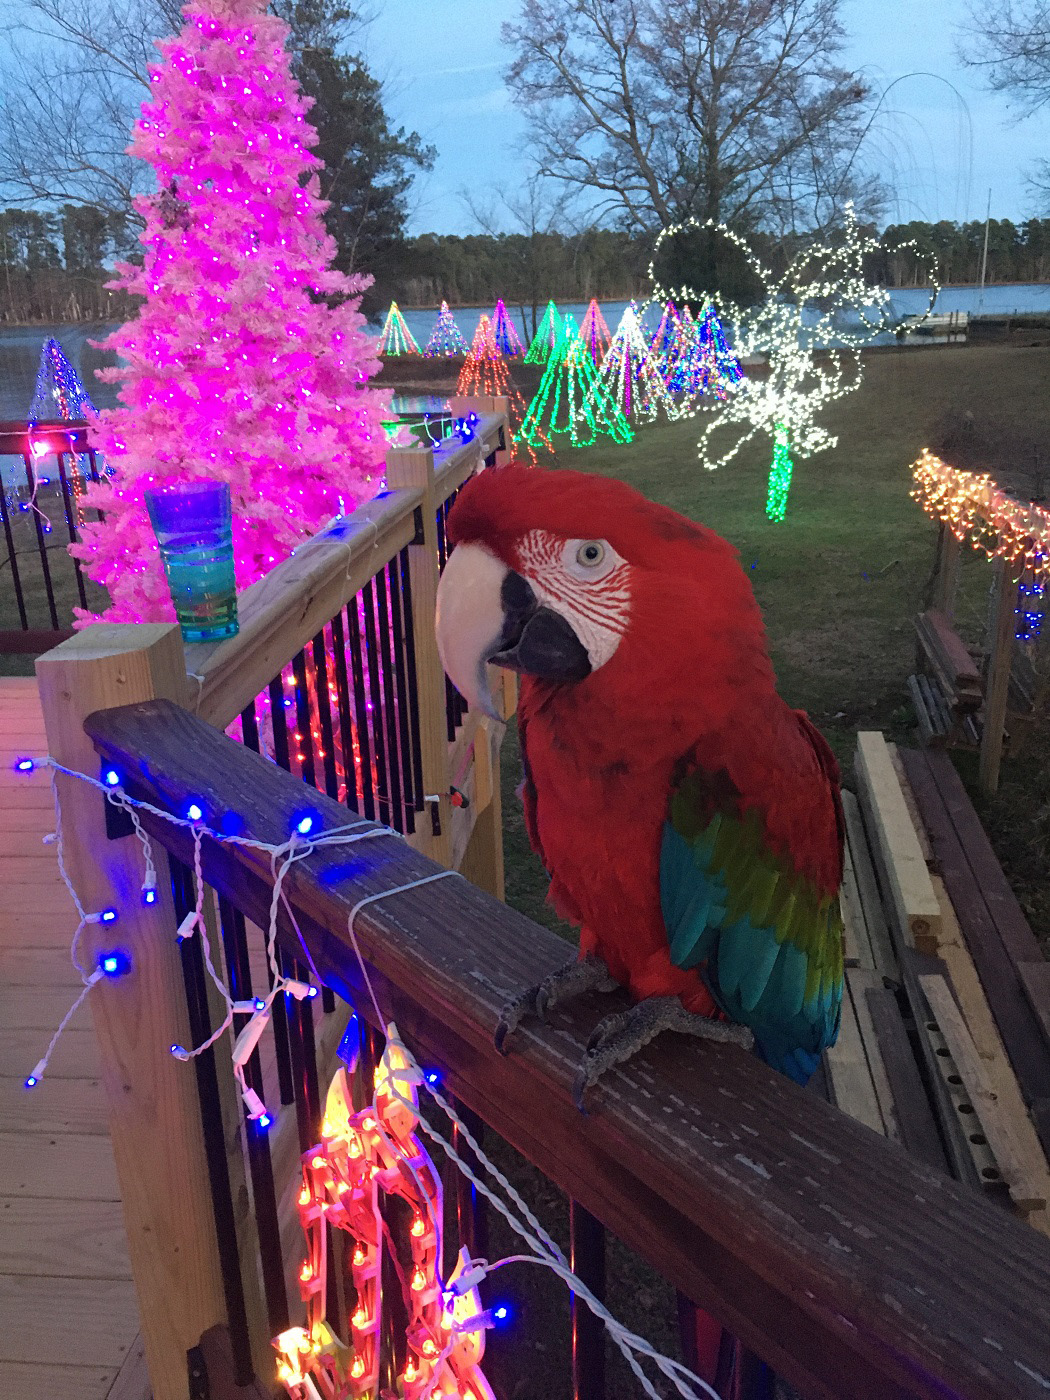 Did-we-mention-the-parrot-loves-the-new-sunroom-too-?